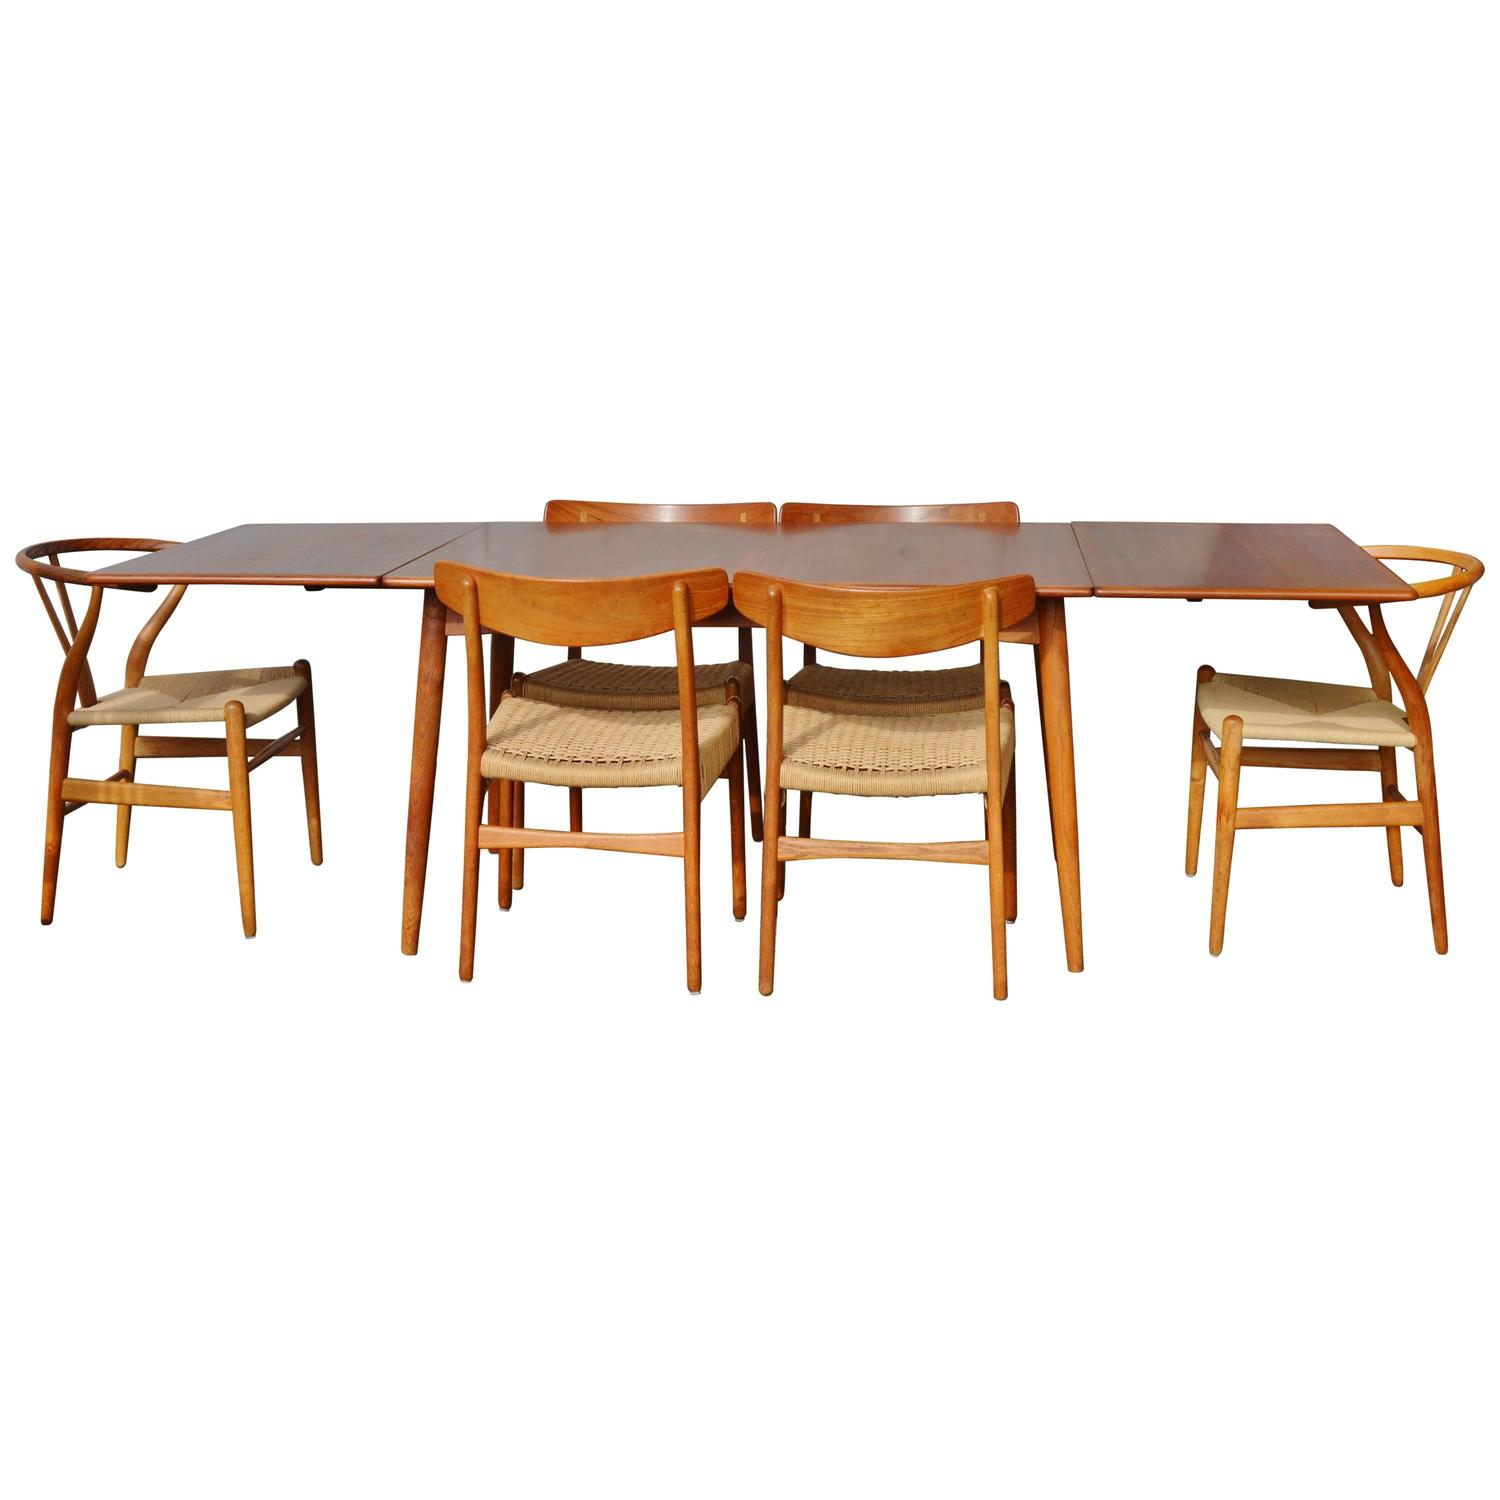 Impeccable Quality Hans Wegner Drop-Leaf Dining Table with Six Chairs at  1stdibs